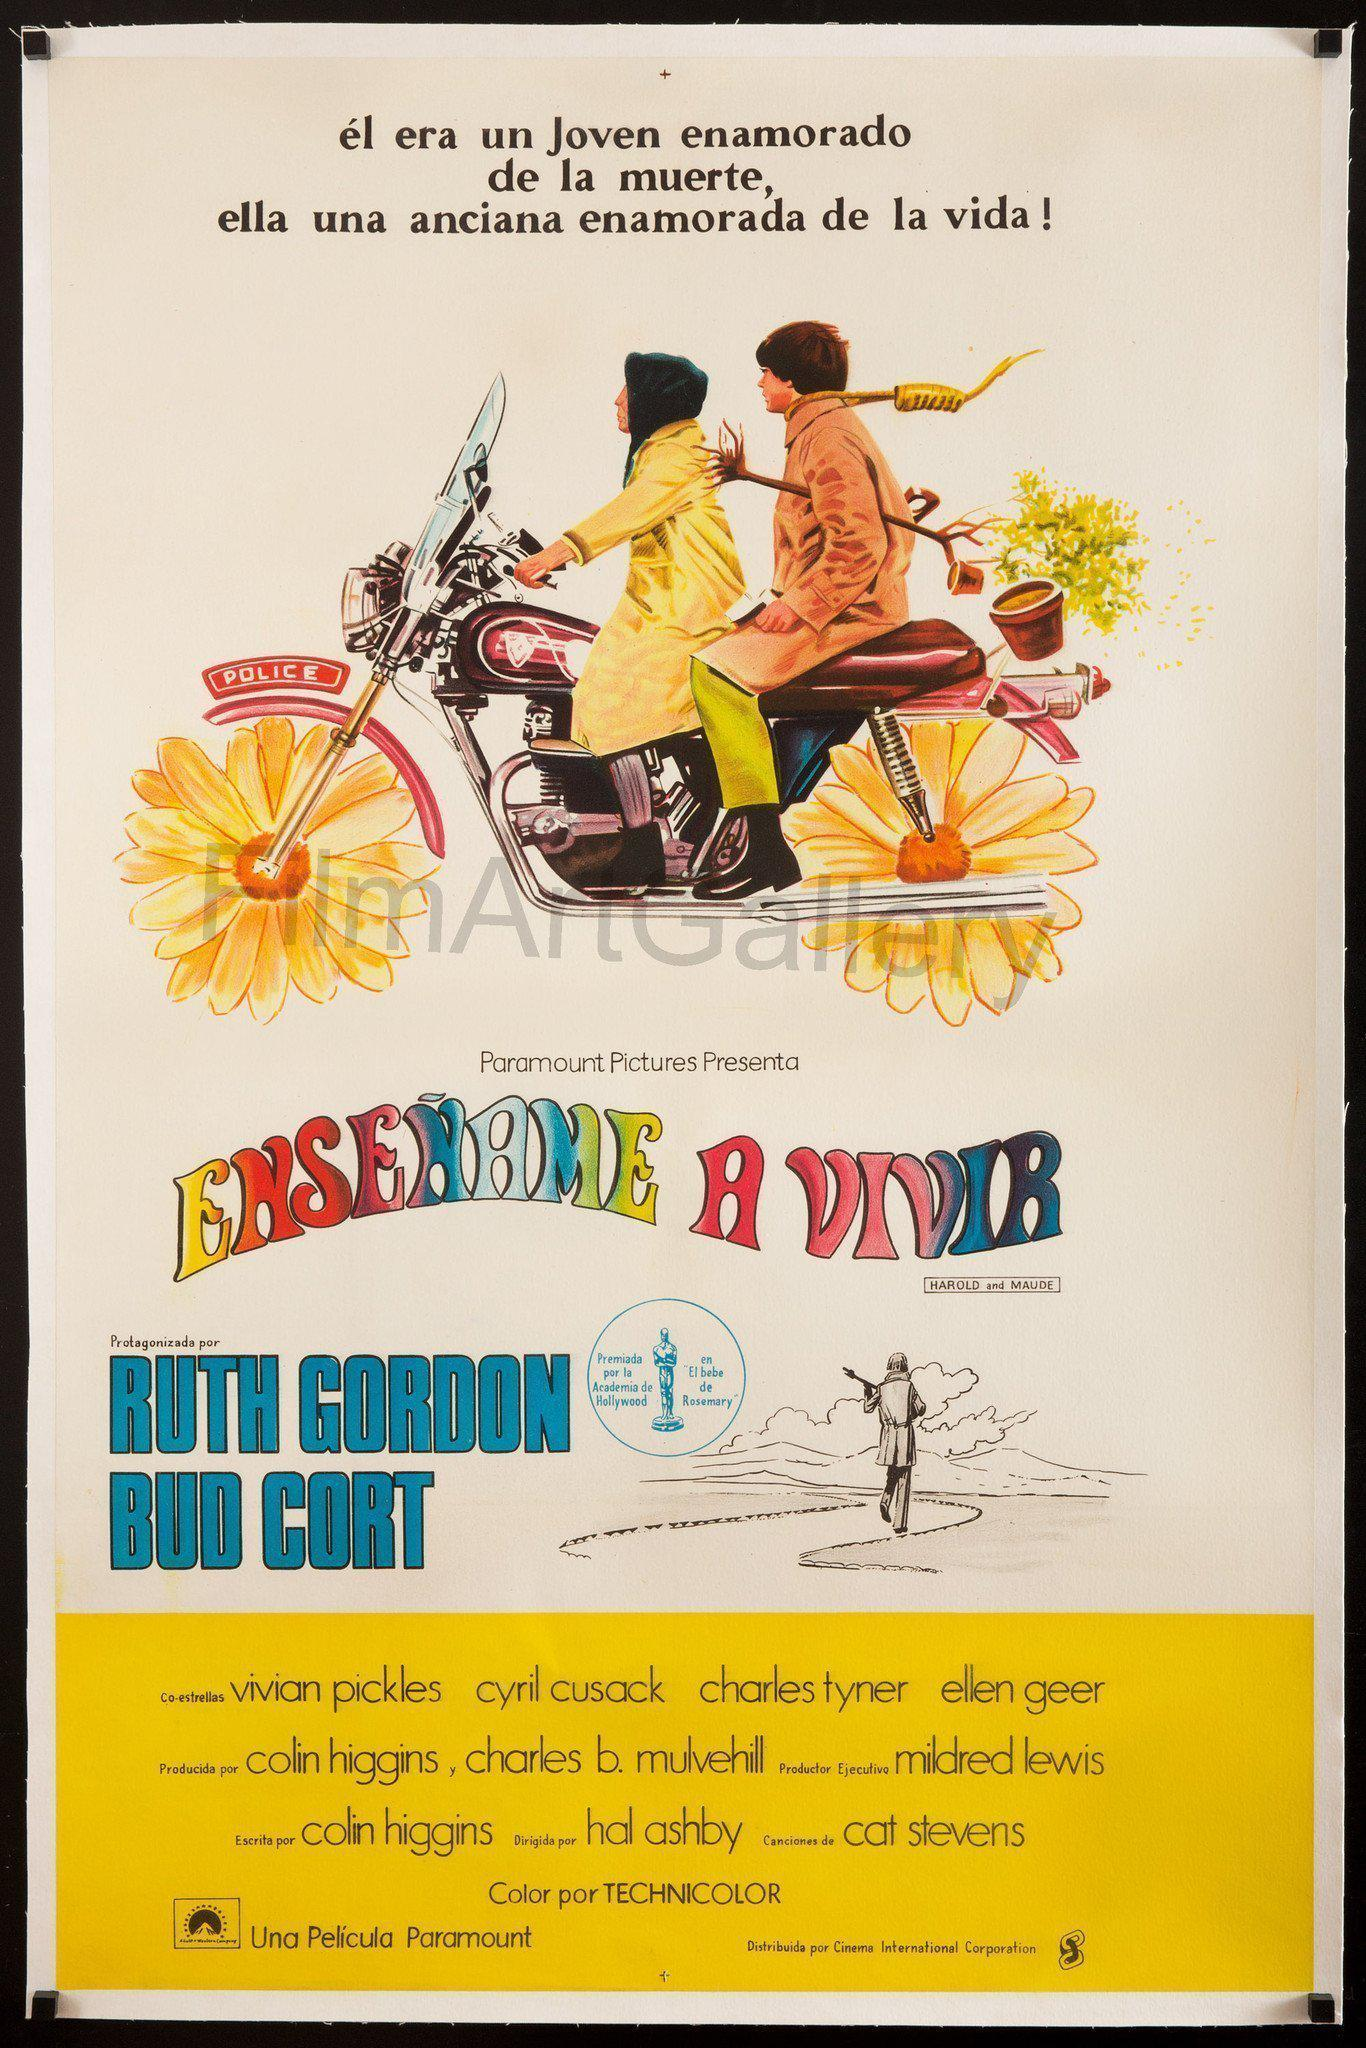 Harold and Maude 1 Sheet (27x41) Original Vintage Movie Poster